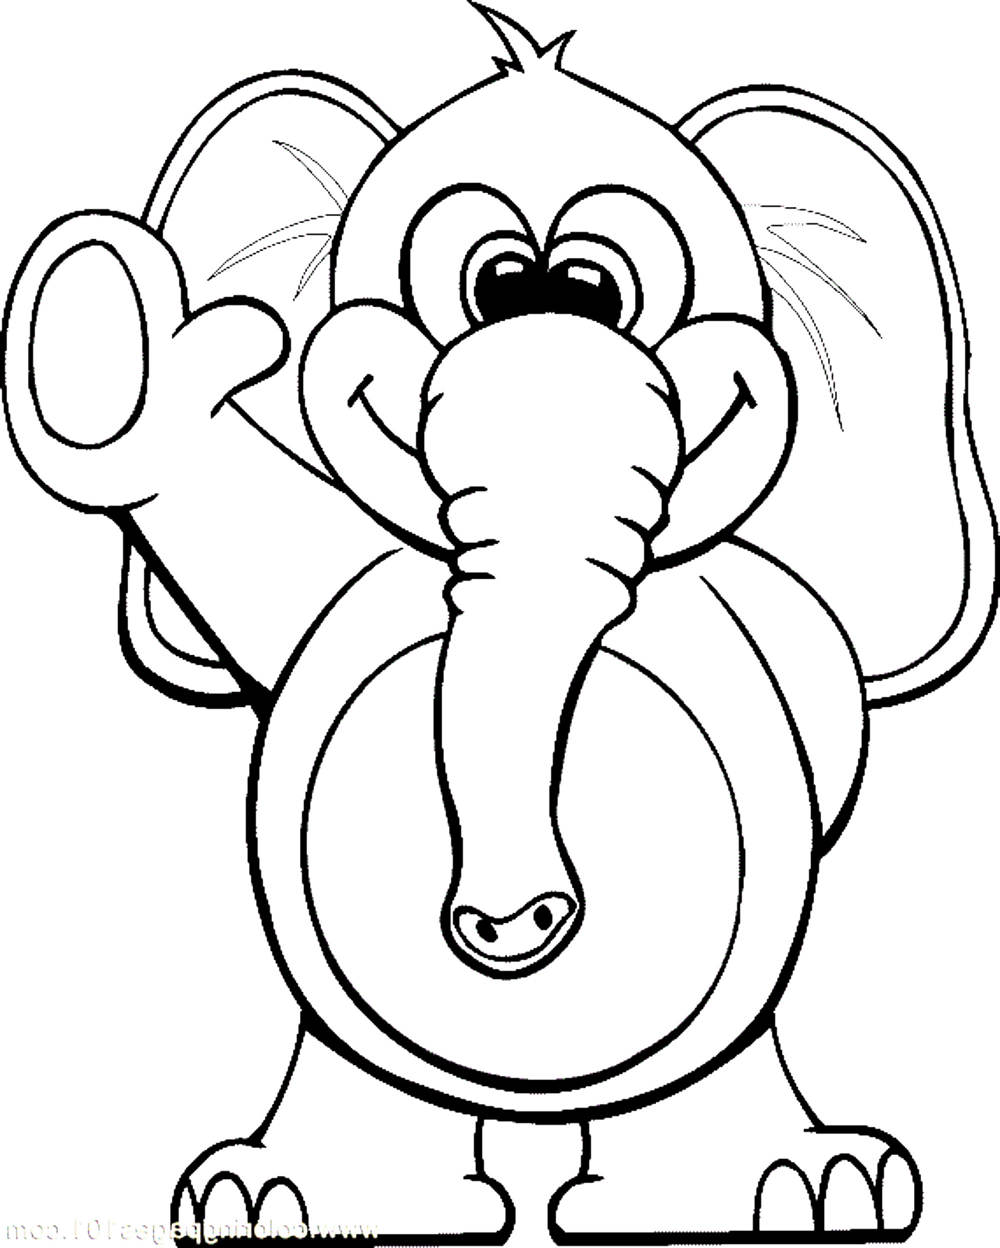 coloring book elephant images adult coloring page coloring home coloring images elephant book